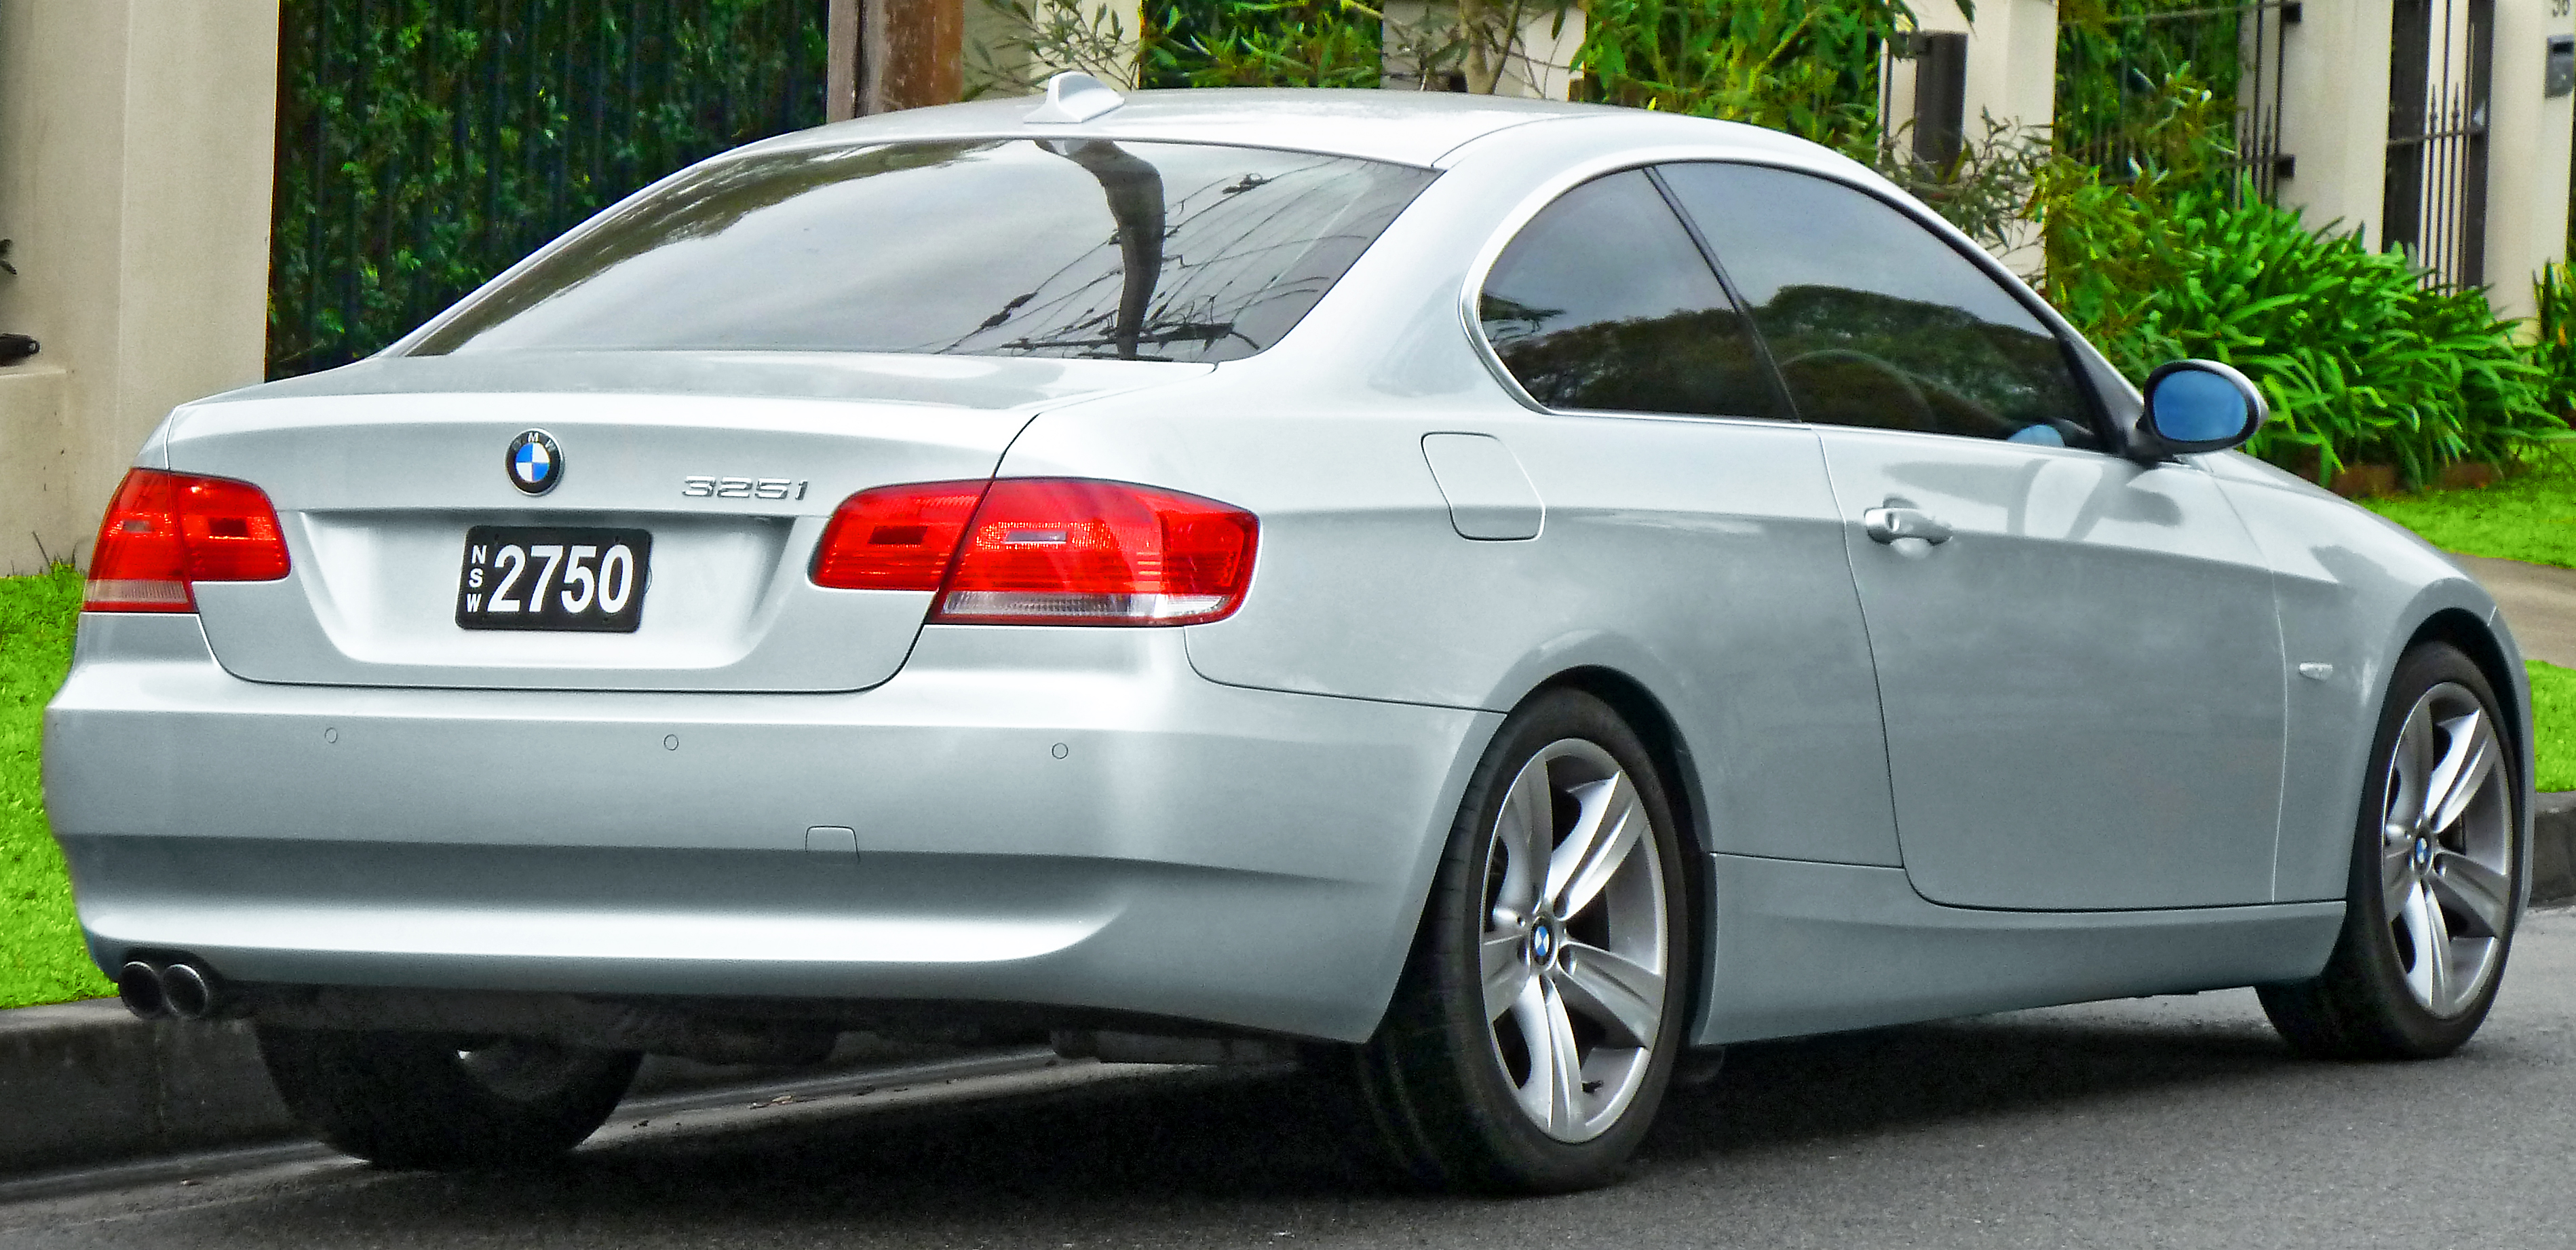 file 2006 2010 bmw 325i e92 coupe 2011 07 17 wikimedia commons. Black Bedroom Furniture Sets. Home Design Ideas